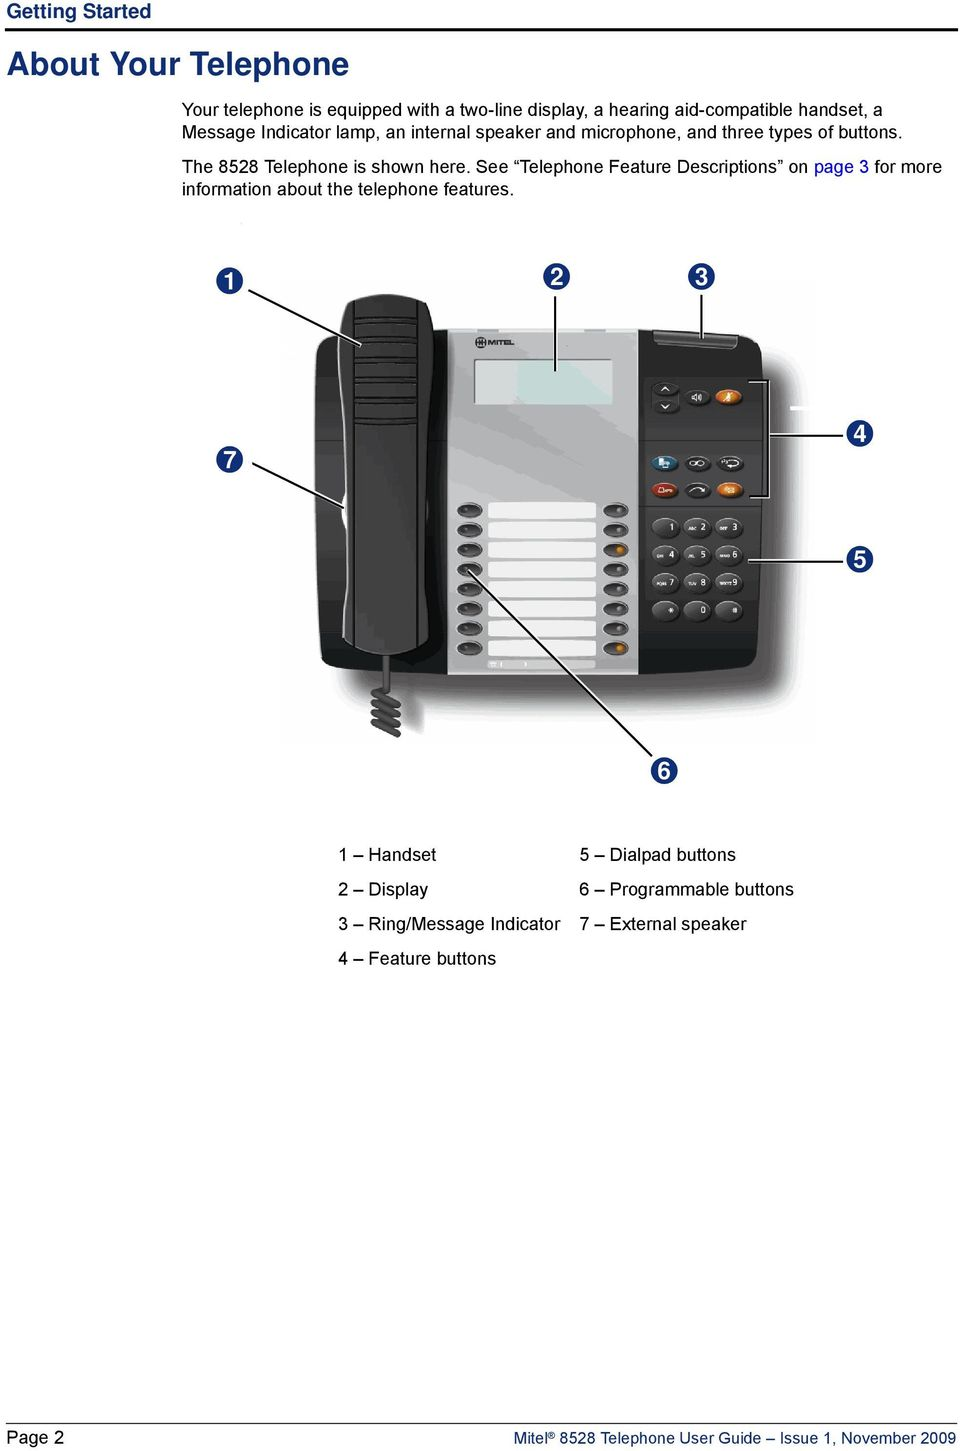 See Telephone Feature Descriptions on page 3 for more information about the telephone features.